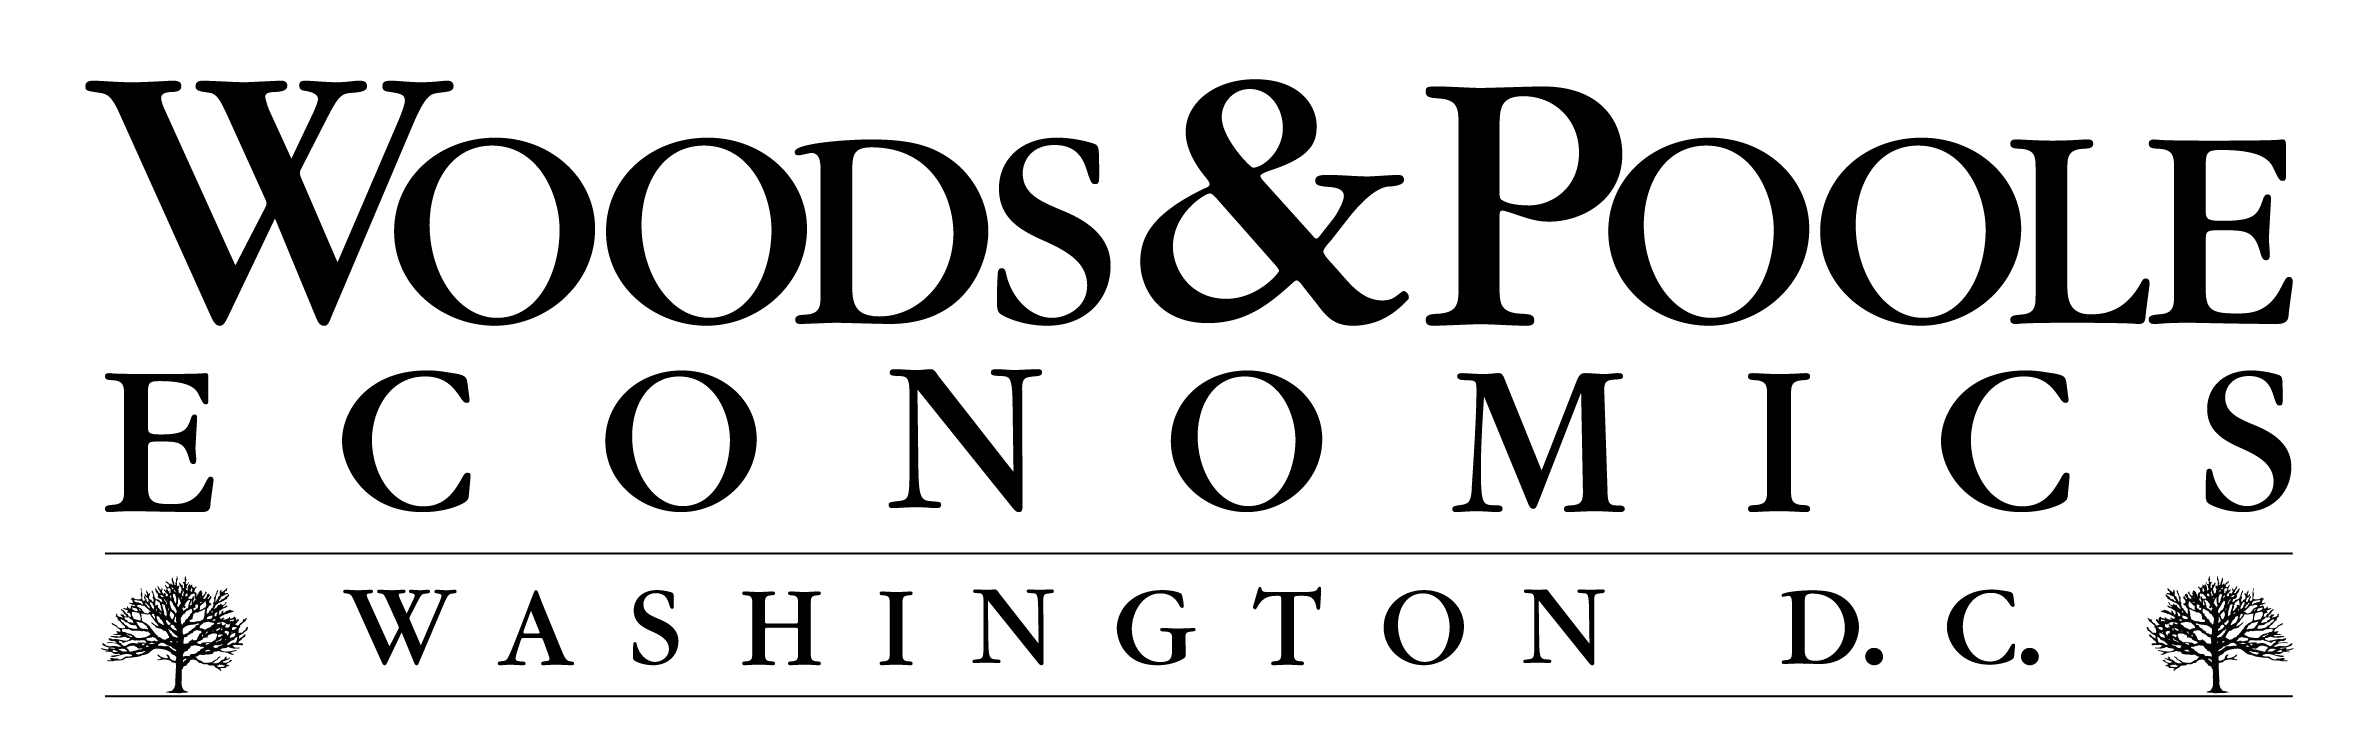 DUBUQUE IA (FIPS 20220) | Woods & Poole Economics, Inc